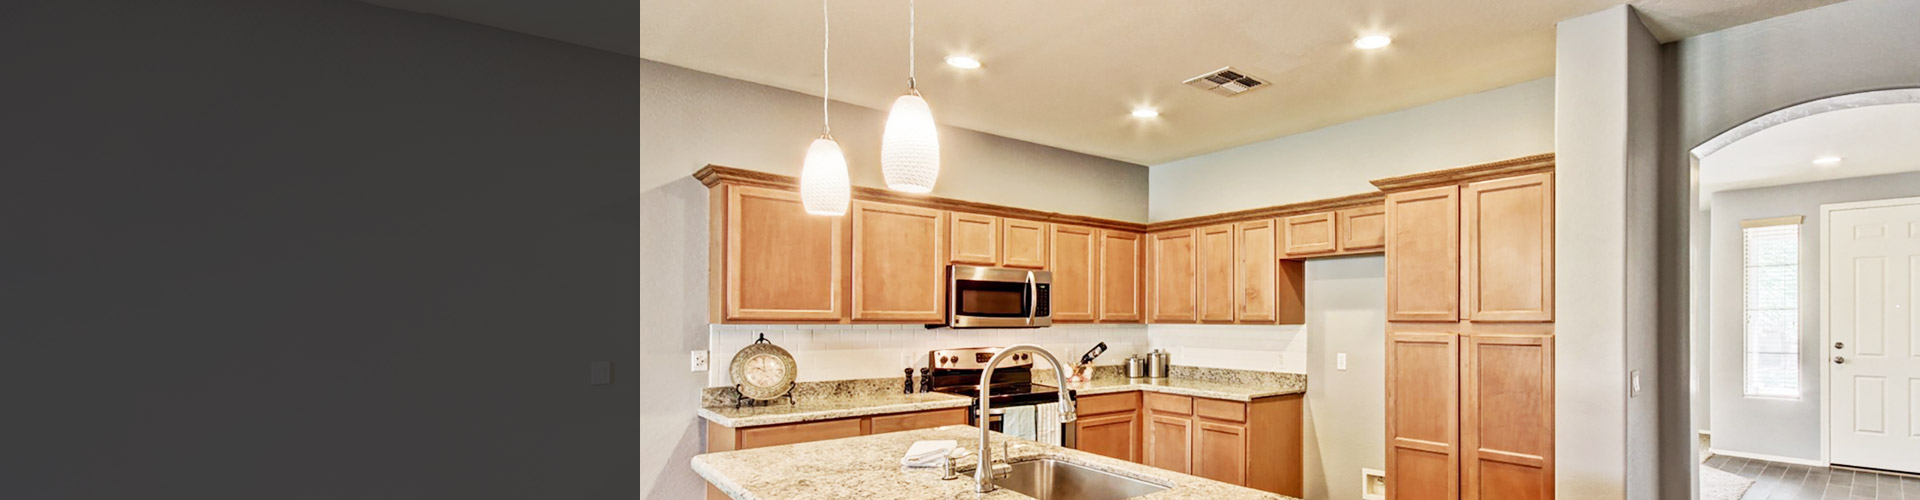 Led recessed lighting in peoria az led can lights improve the efficiency of your homes lighting with led recessed lights aloadofball Image collections